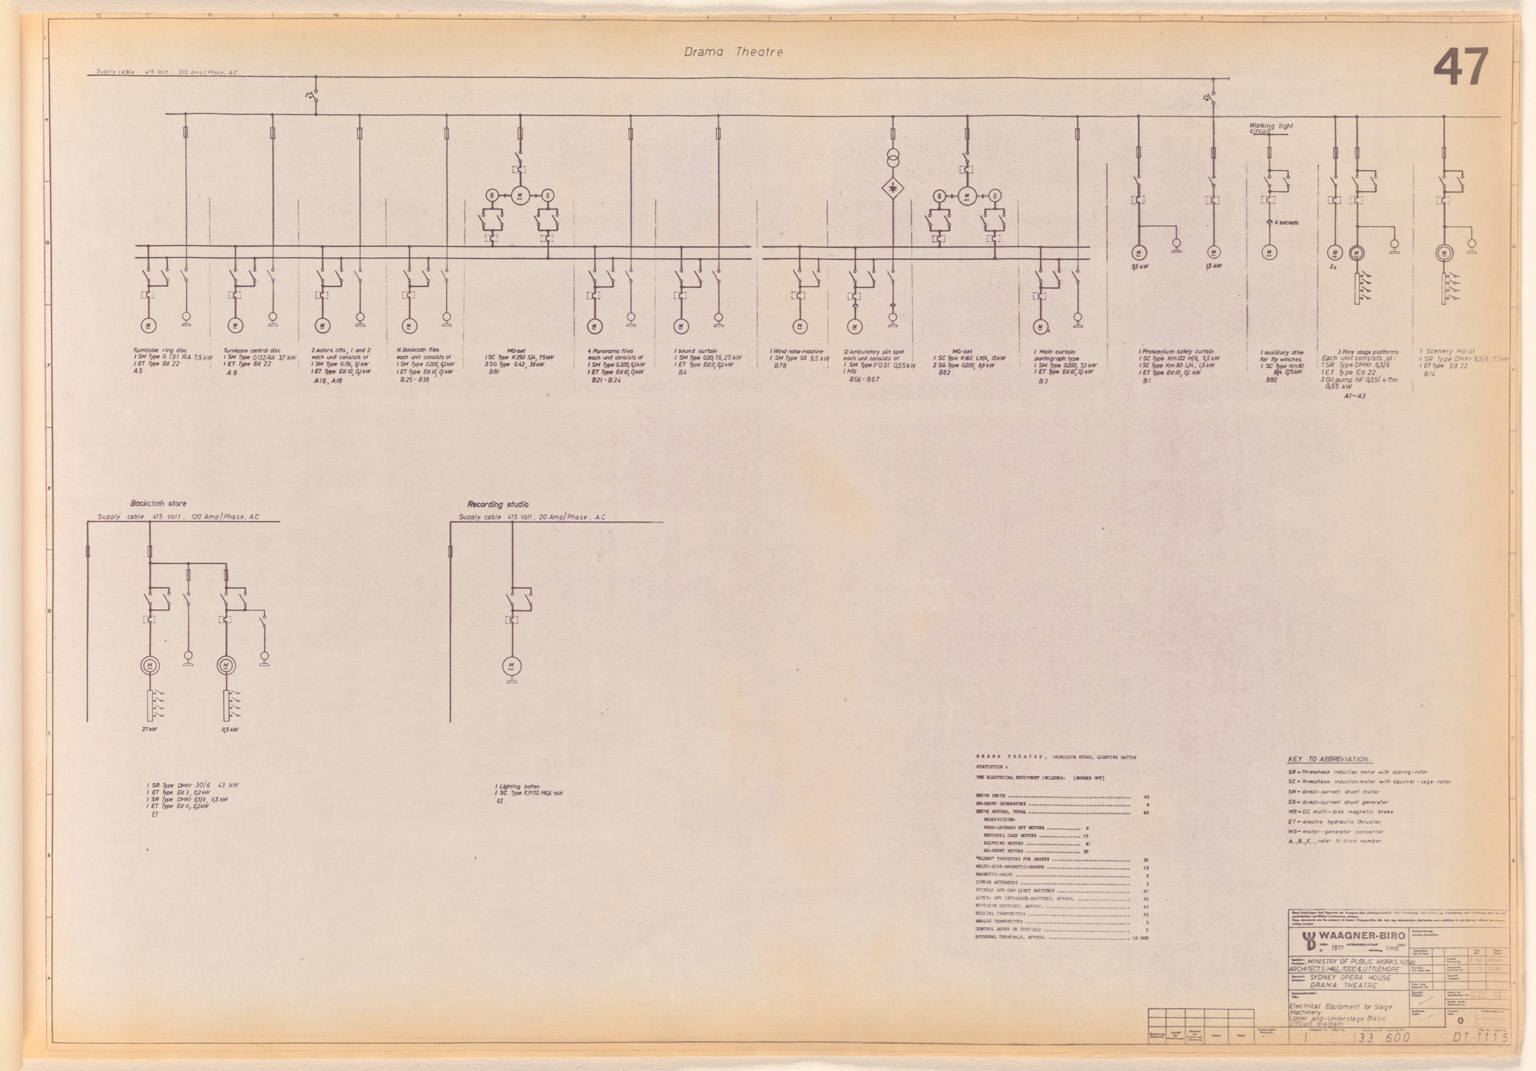 Stage Machinery Assembly Drawings For Major Hall Minor And Capacitorreformingcircuit Basiccircuit Circuit Diagram Sydney Opera House Drama Theatre Electrical Equipment Upper Understage Basic